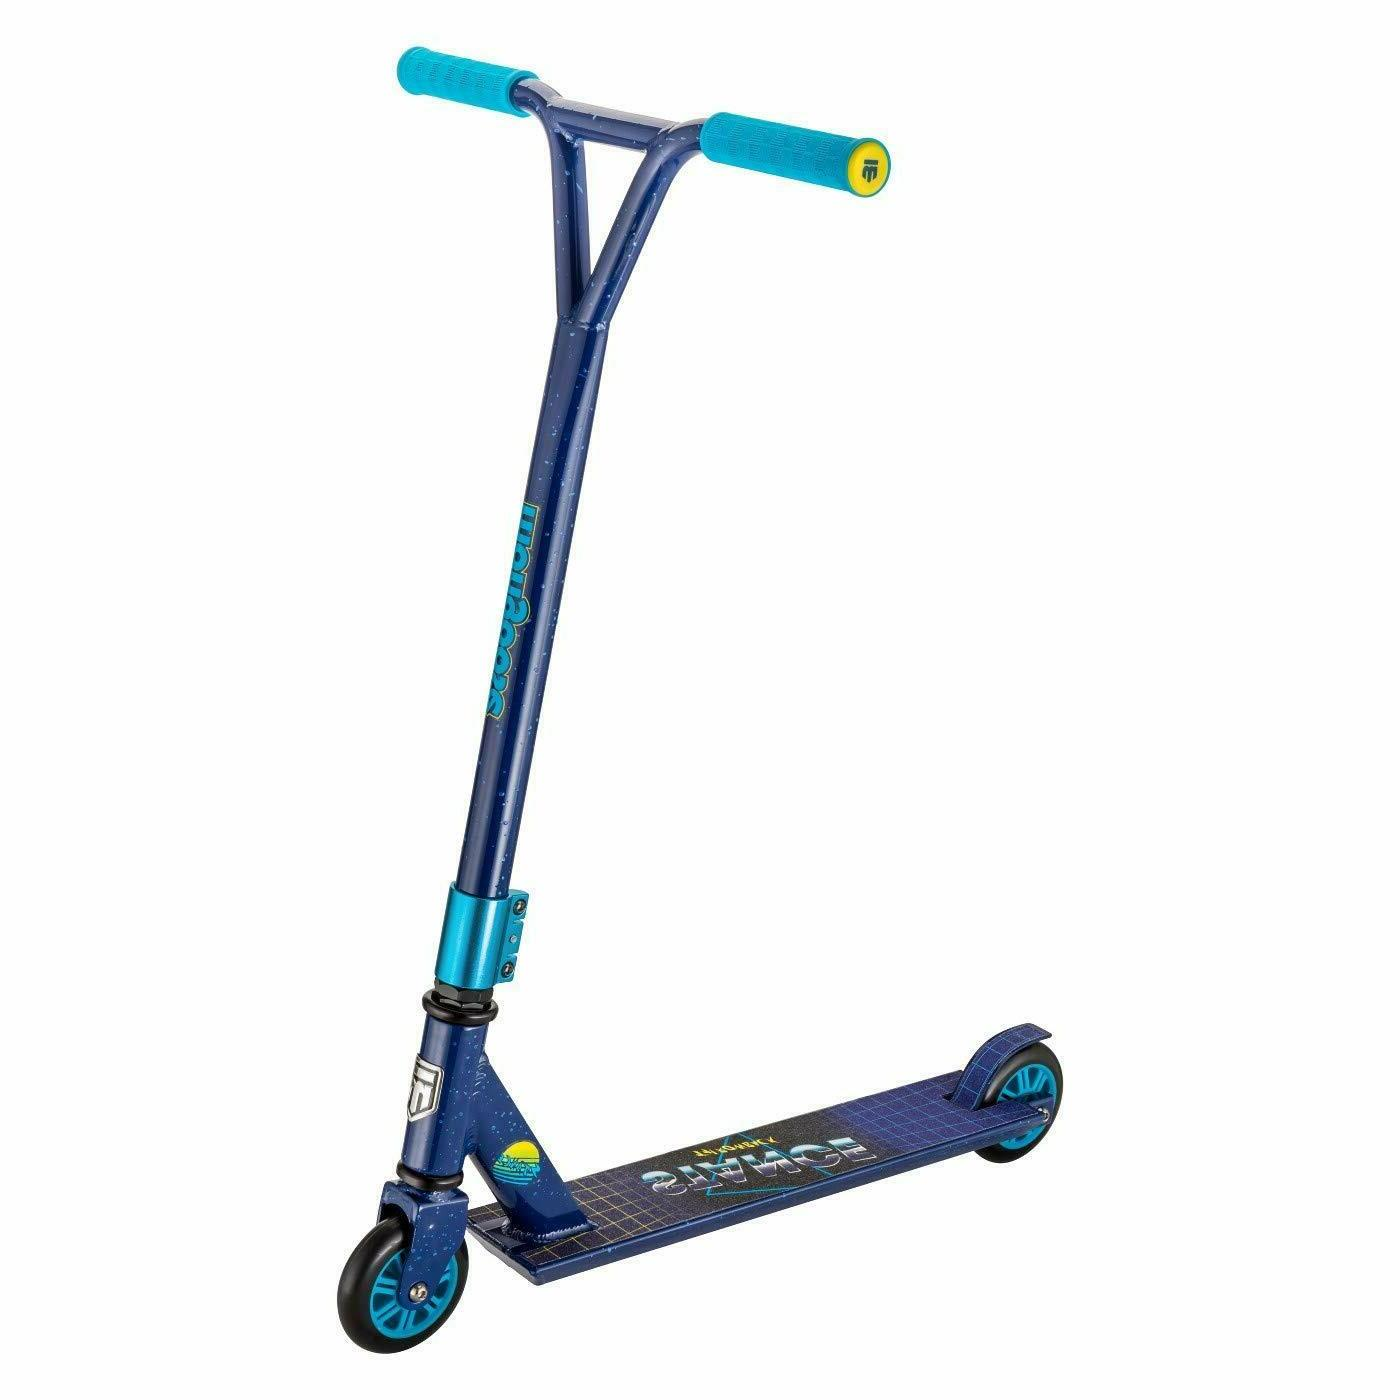 Mongoose Stance Scooter - New & Lightweight